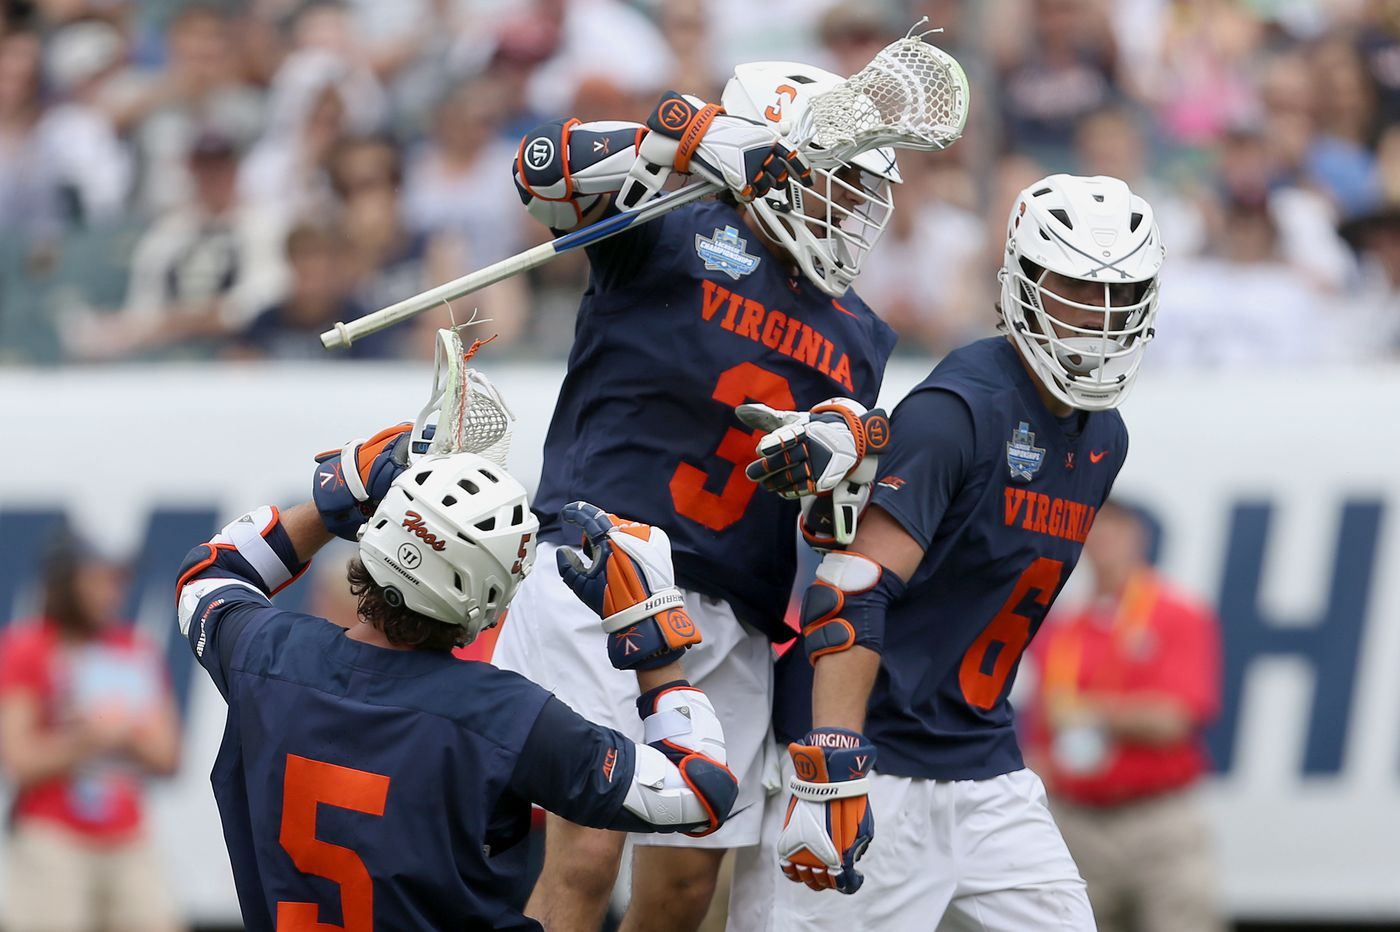 NCAA lacrosse championship: Eagles fan, local Dox Aitken hopes to lead Virginia over Yale at the Linc